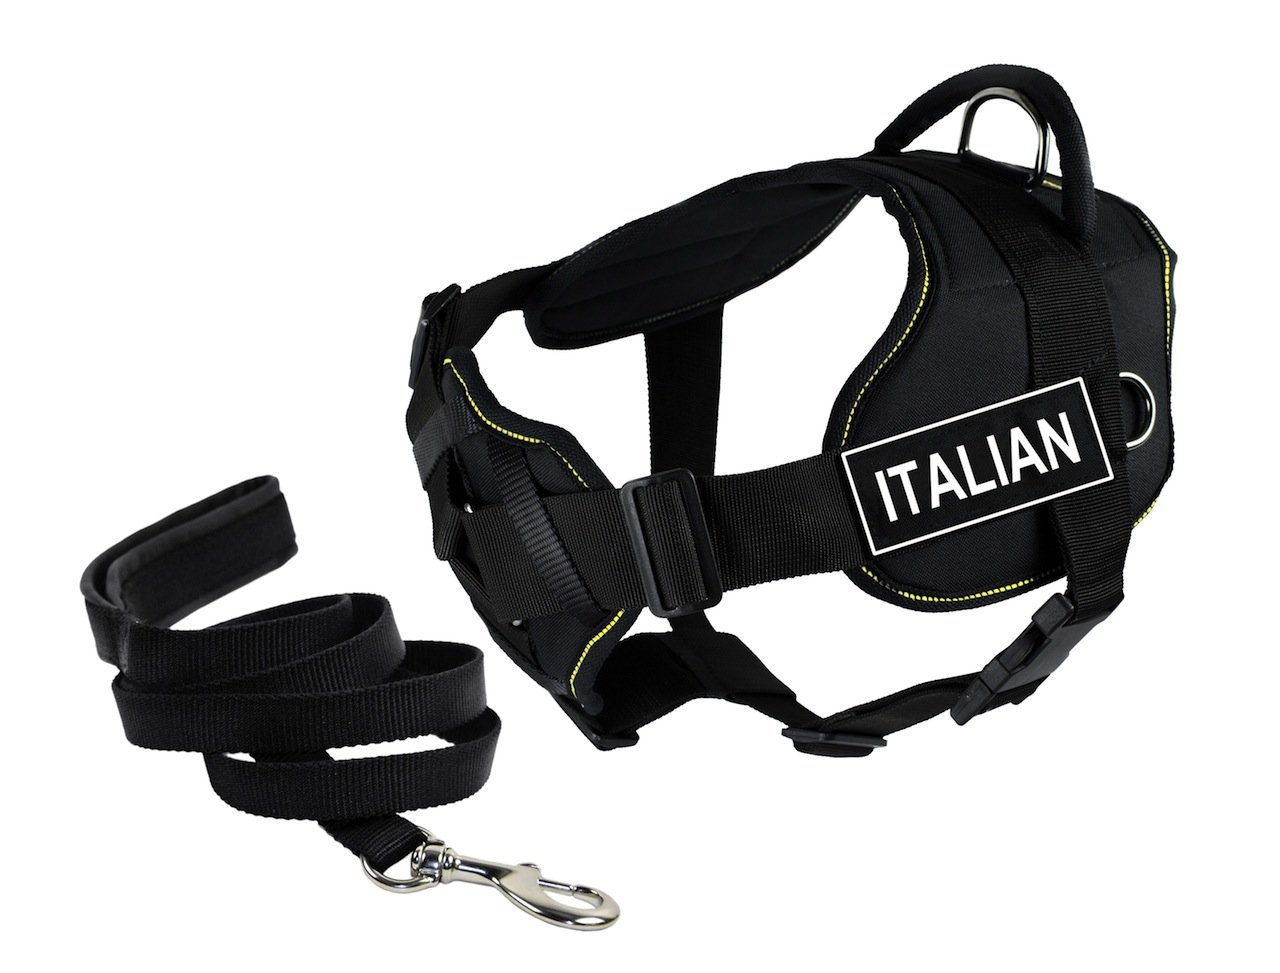 Dean & Tyler Bundle of 34 to 47-Inch DT Fun Harness with Chest Support and 6-Feet Stainless Snap Padded Puppy Leash, Italian, Black with Yellow Trim